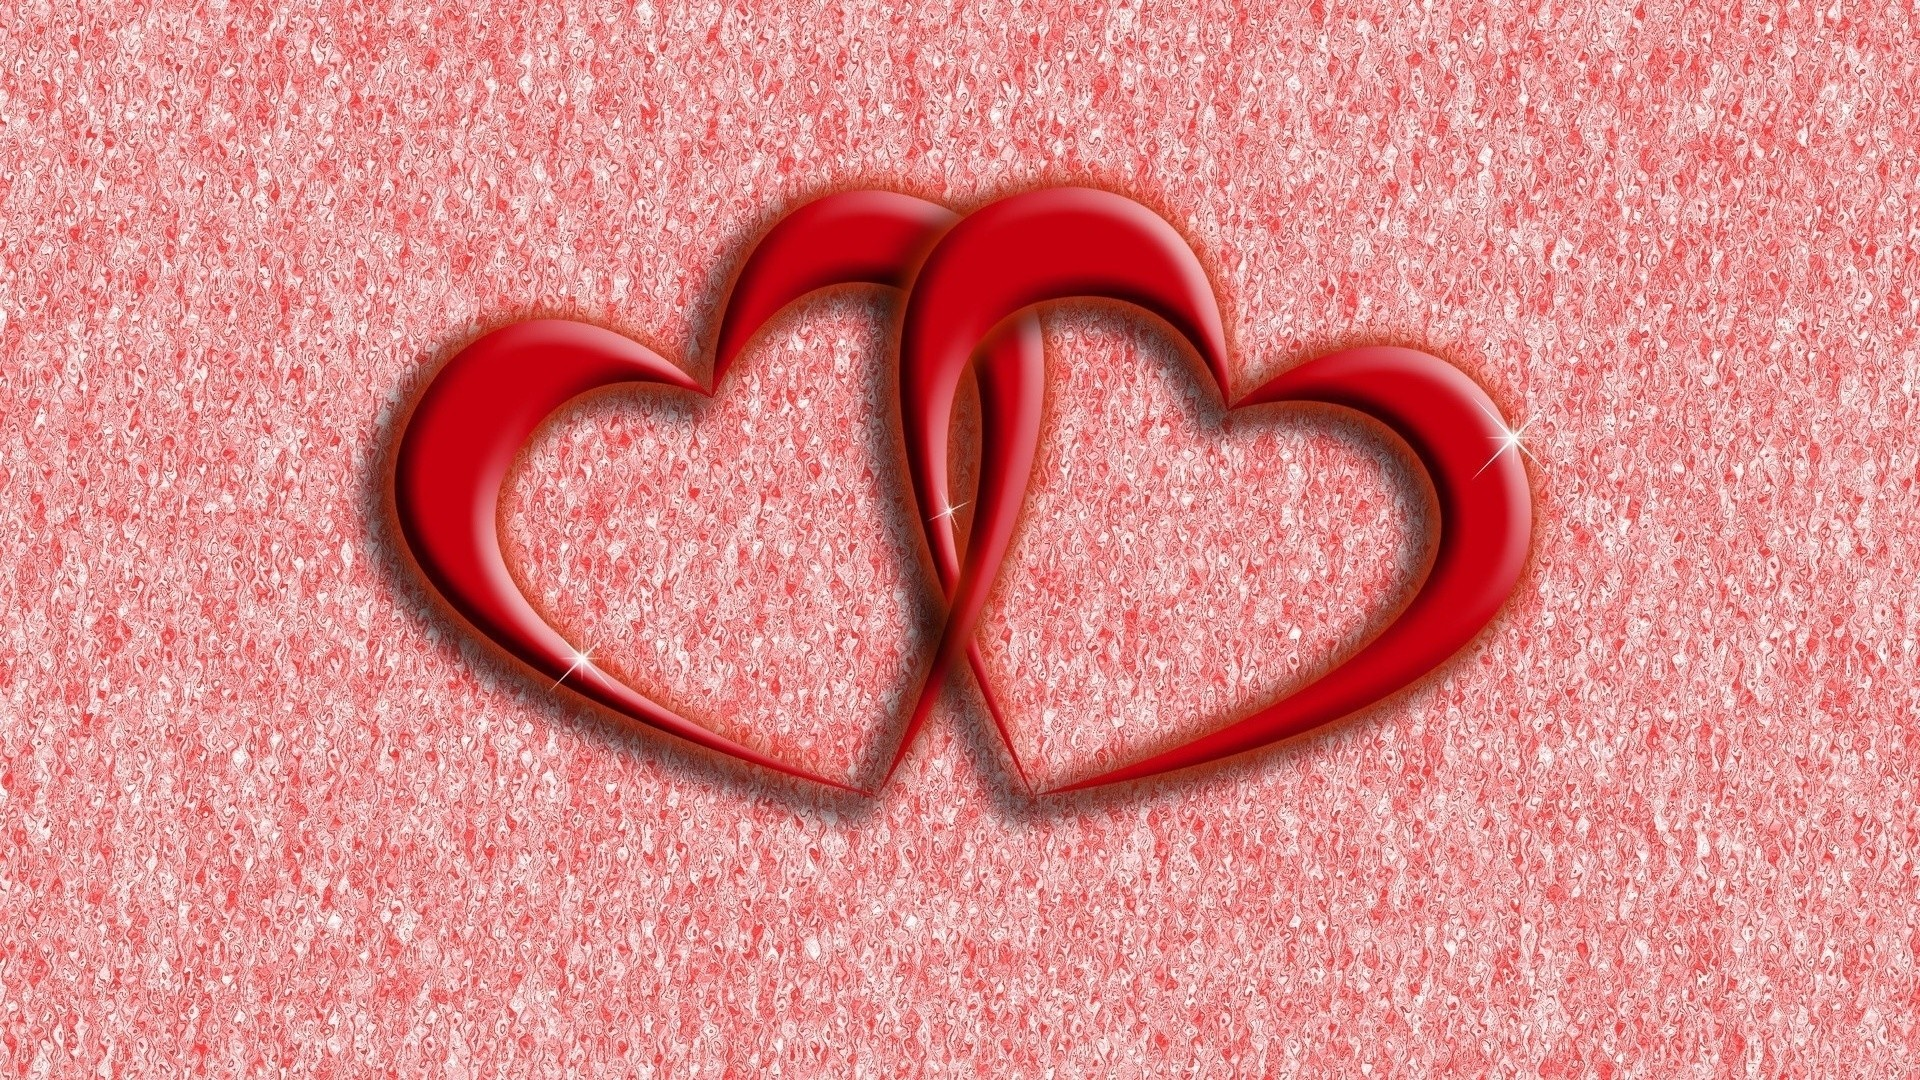 Wallpaper Heart Love You 60 Images